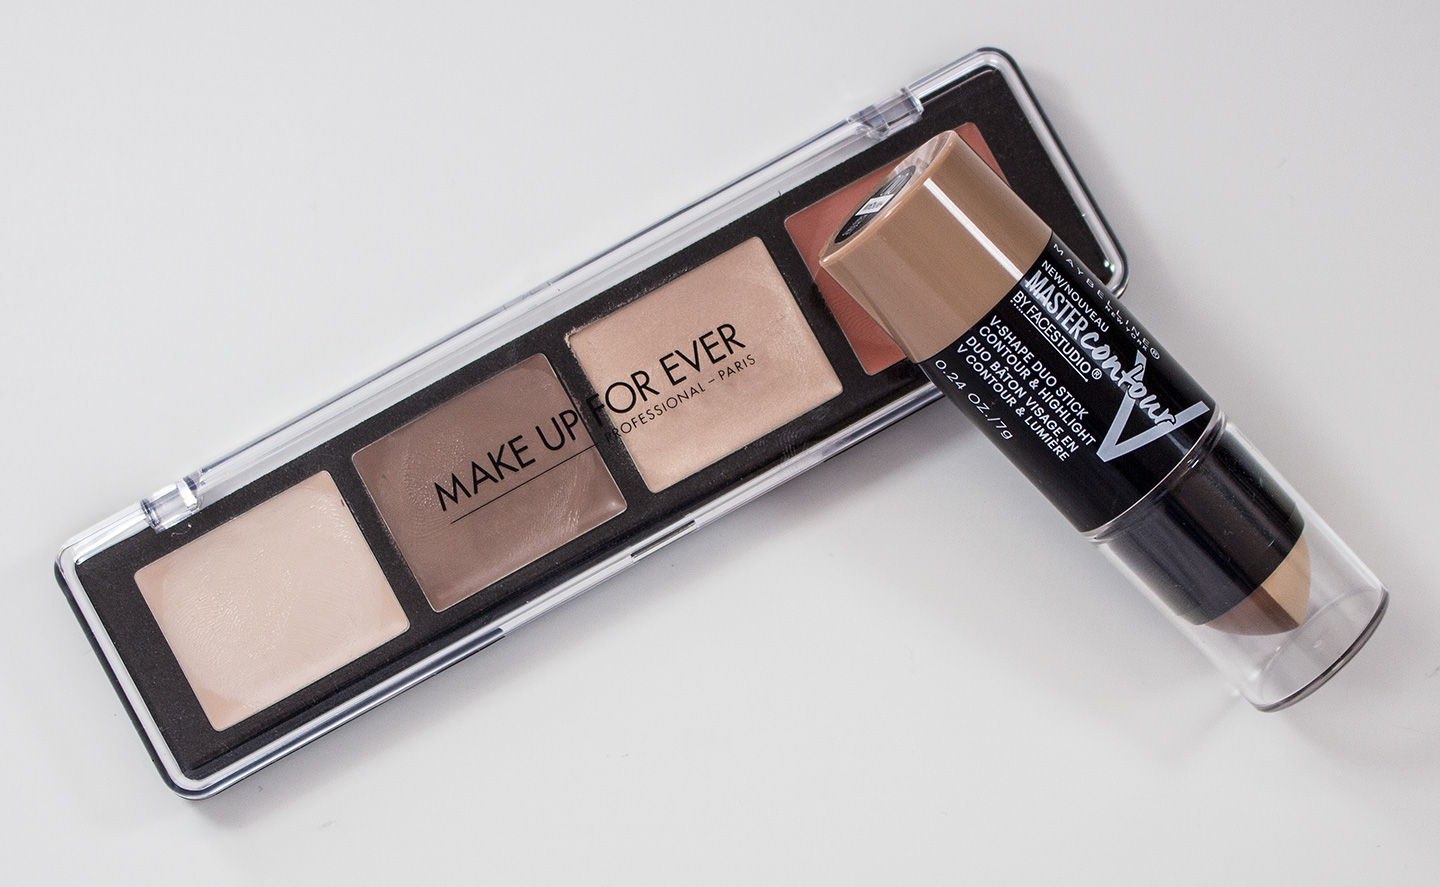 Warpaint And Unicorns Dare To Compare Make Up For Ever Pro Meyne V Face Sculpting Palette In 20 Light Vs Maybelline Facestudio Master Contour Highlight Shape Duo Stick